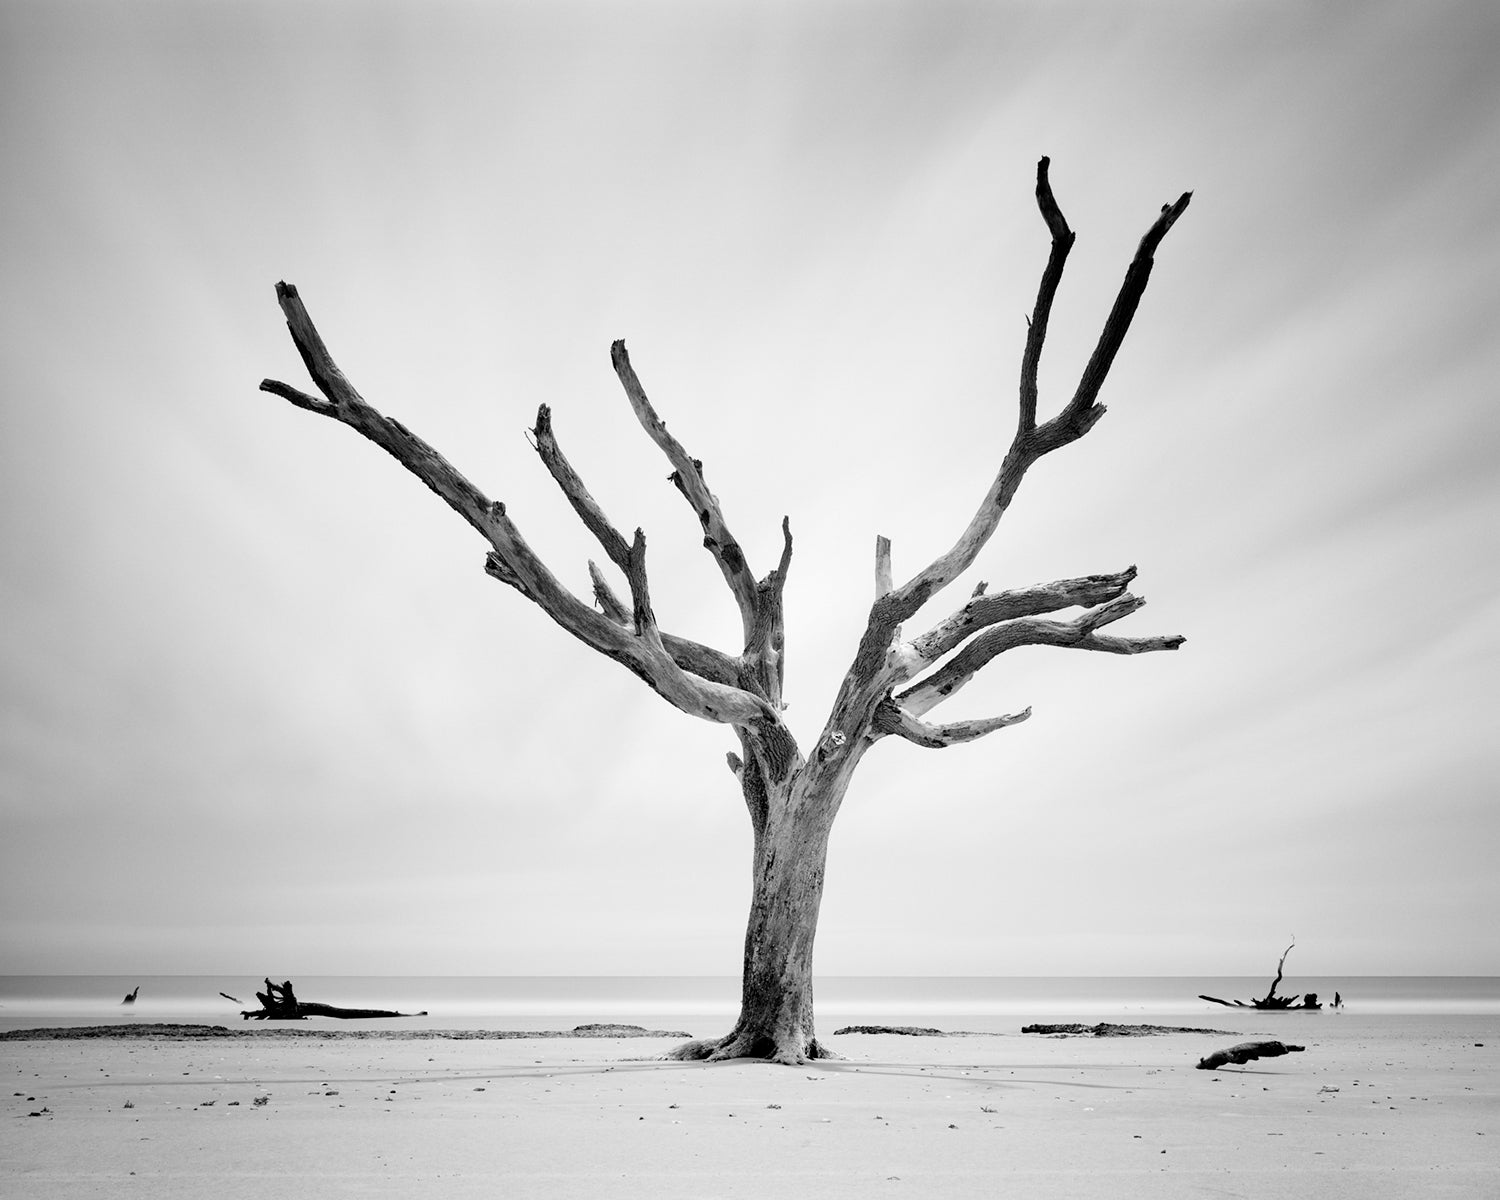 Film photo taken by Mike Basher of a tree at Hunting Island